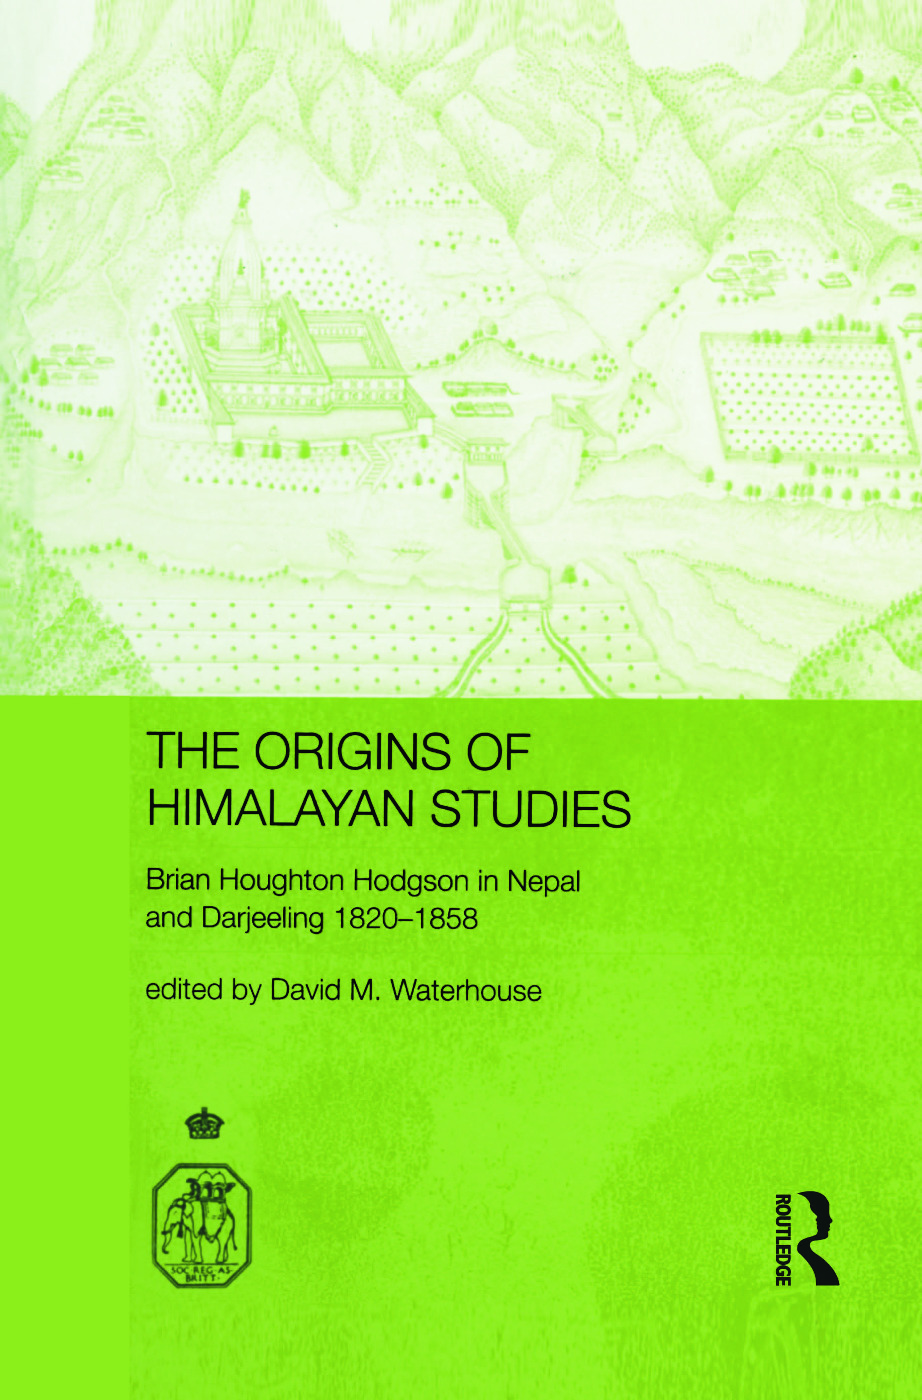 The Origins of Himalayan Studies